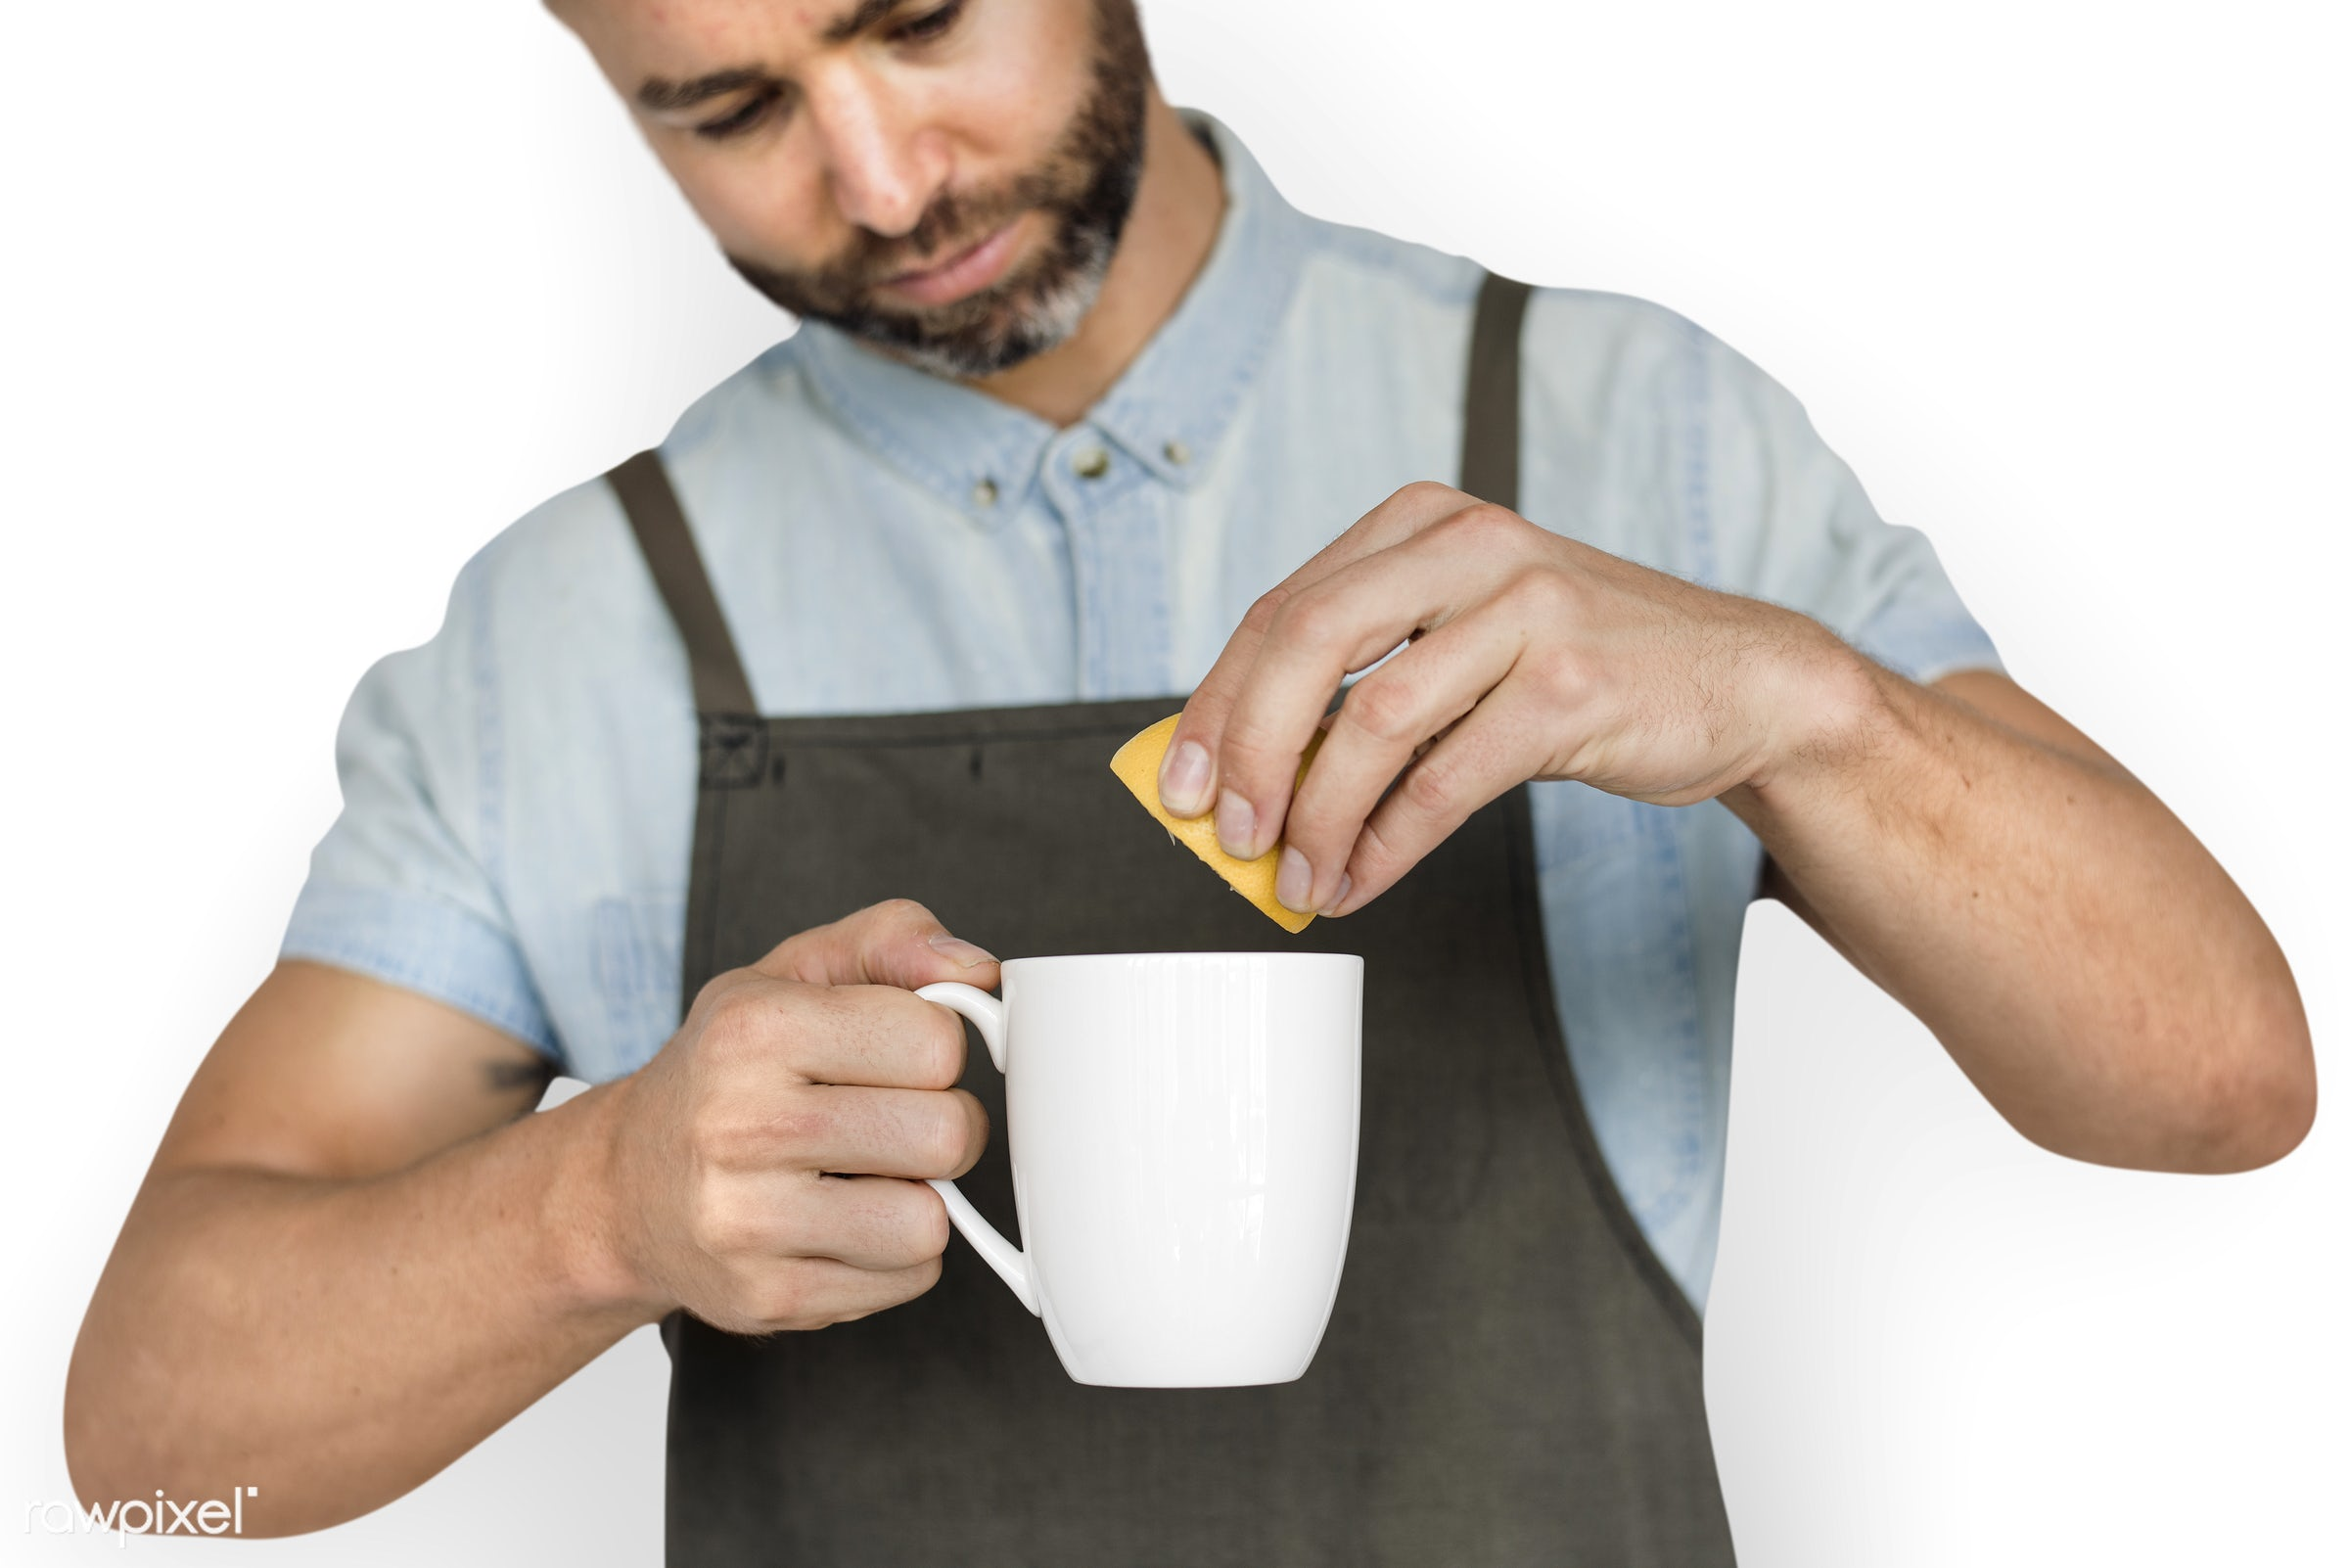 studio, person, model, tea, race, people, style, solo, casual, lifestyle, man, isolated, guy, male, white, gesture, posing,...